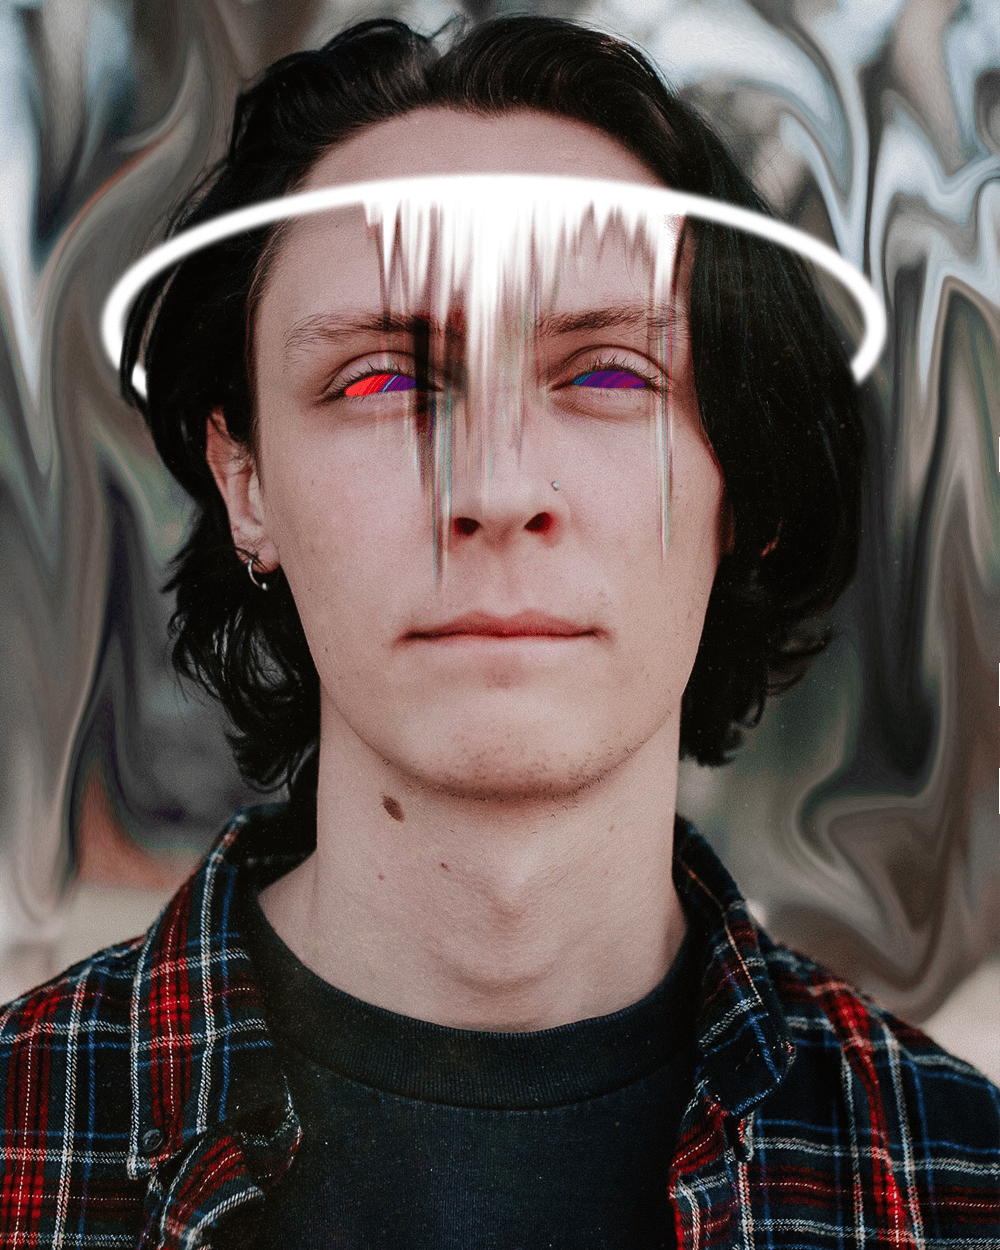 Trippy Boy - image 1 - student project